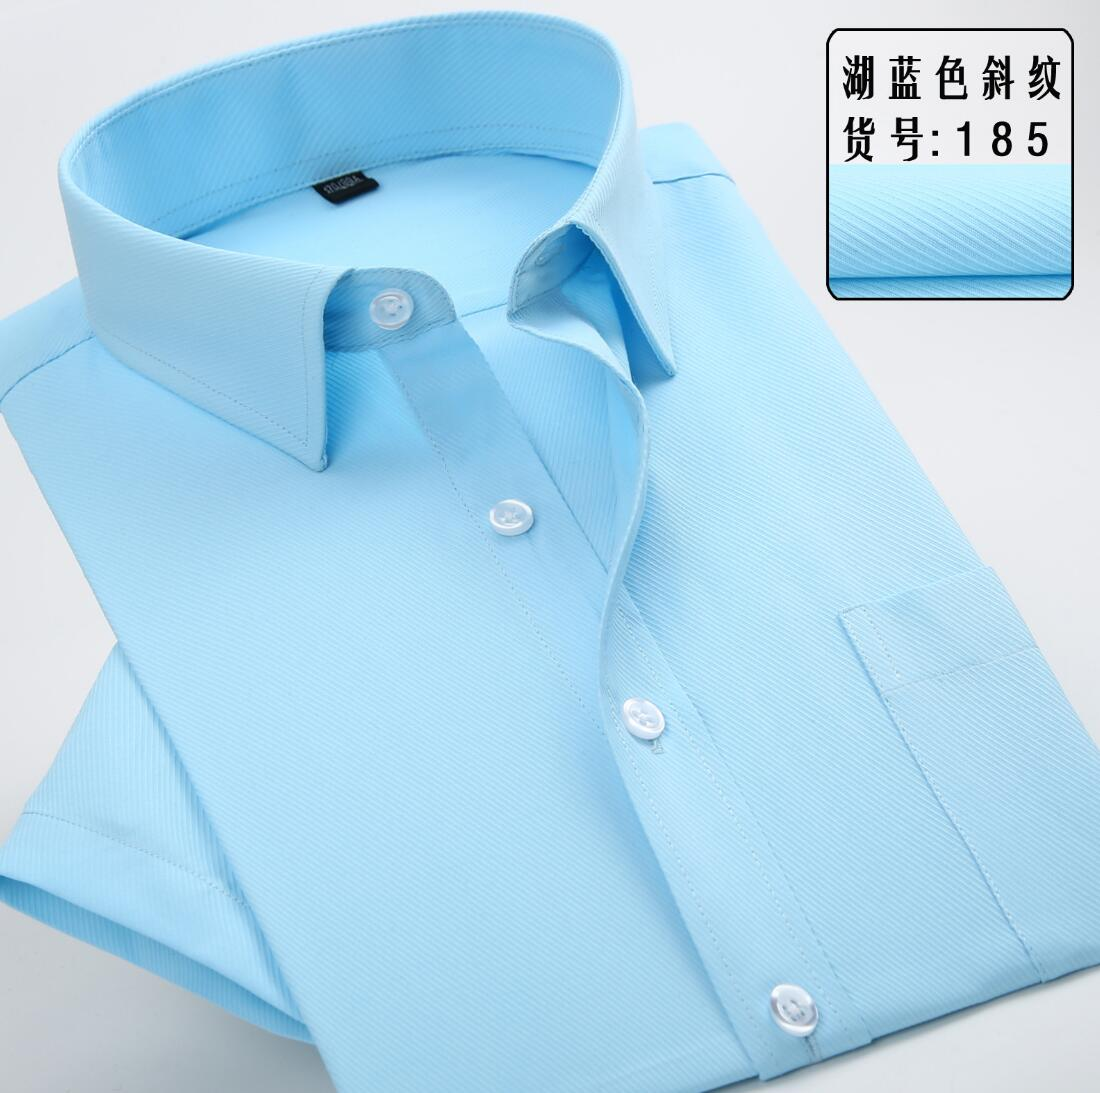 2020 NEW Men  Business Casual Long-sleeved Shirt Em8 Youth Business Wear Shirt  K19720-1-16